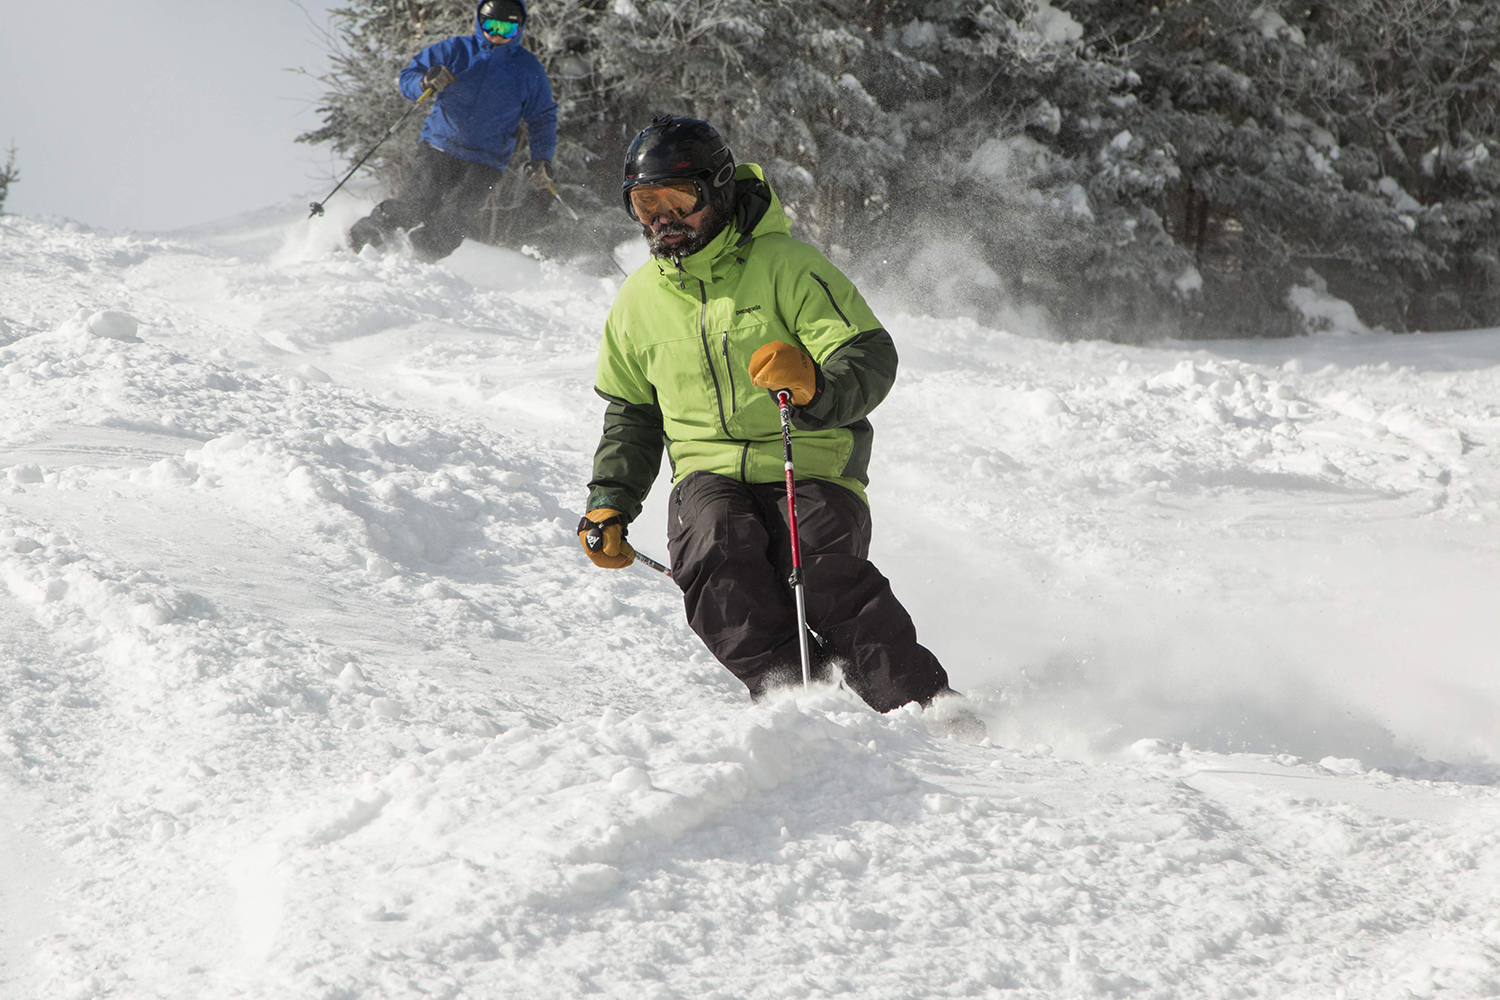 Gore powder day action.